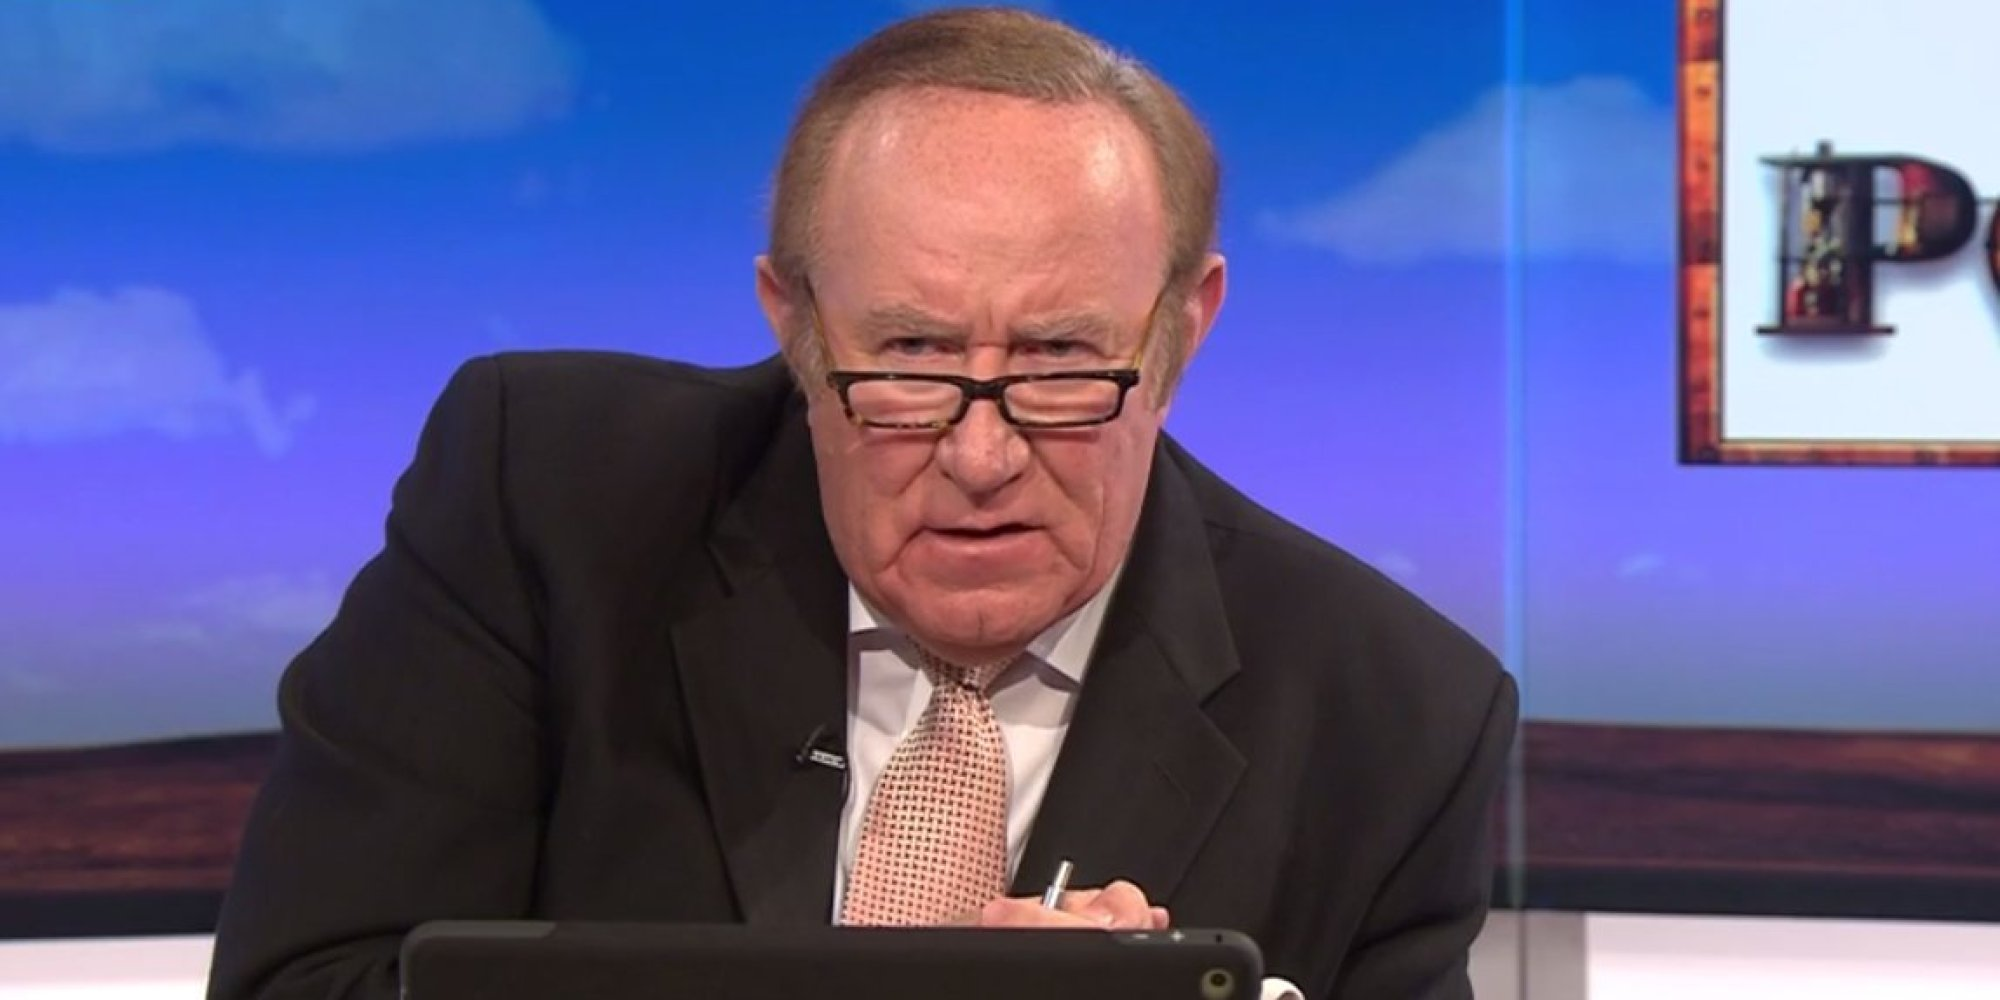 andrew neil - photo #18